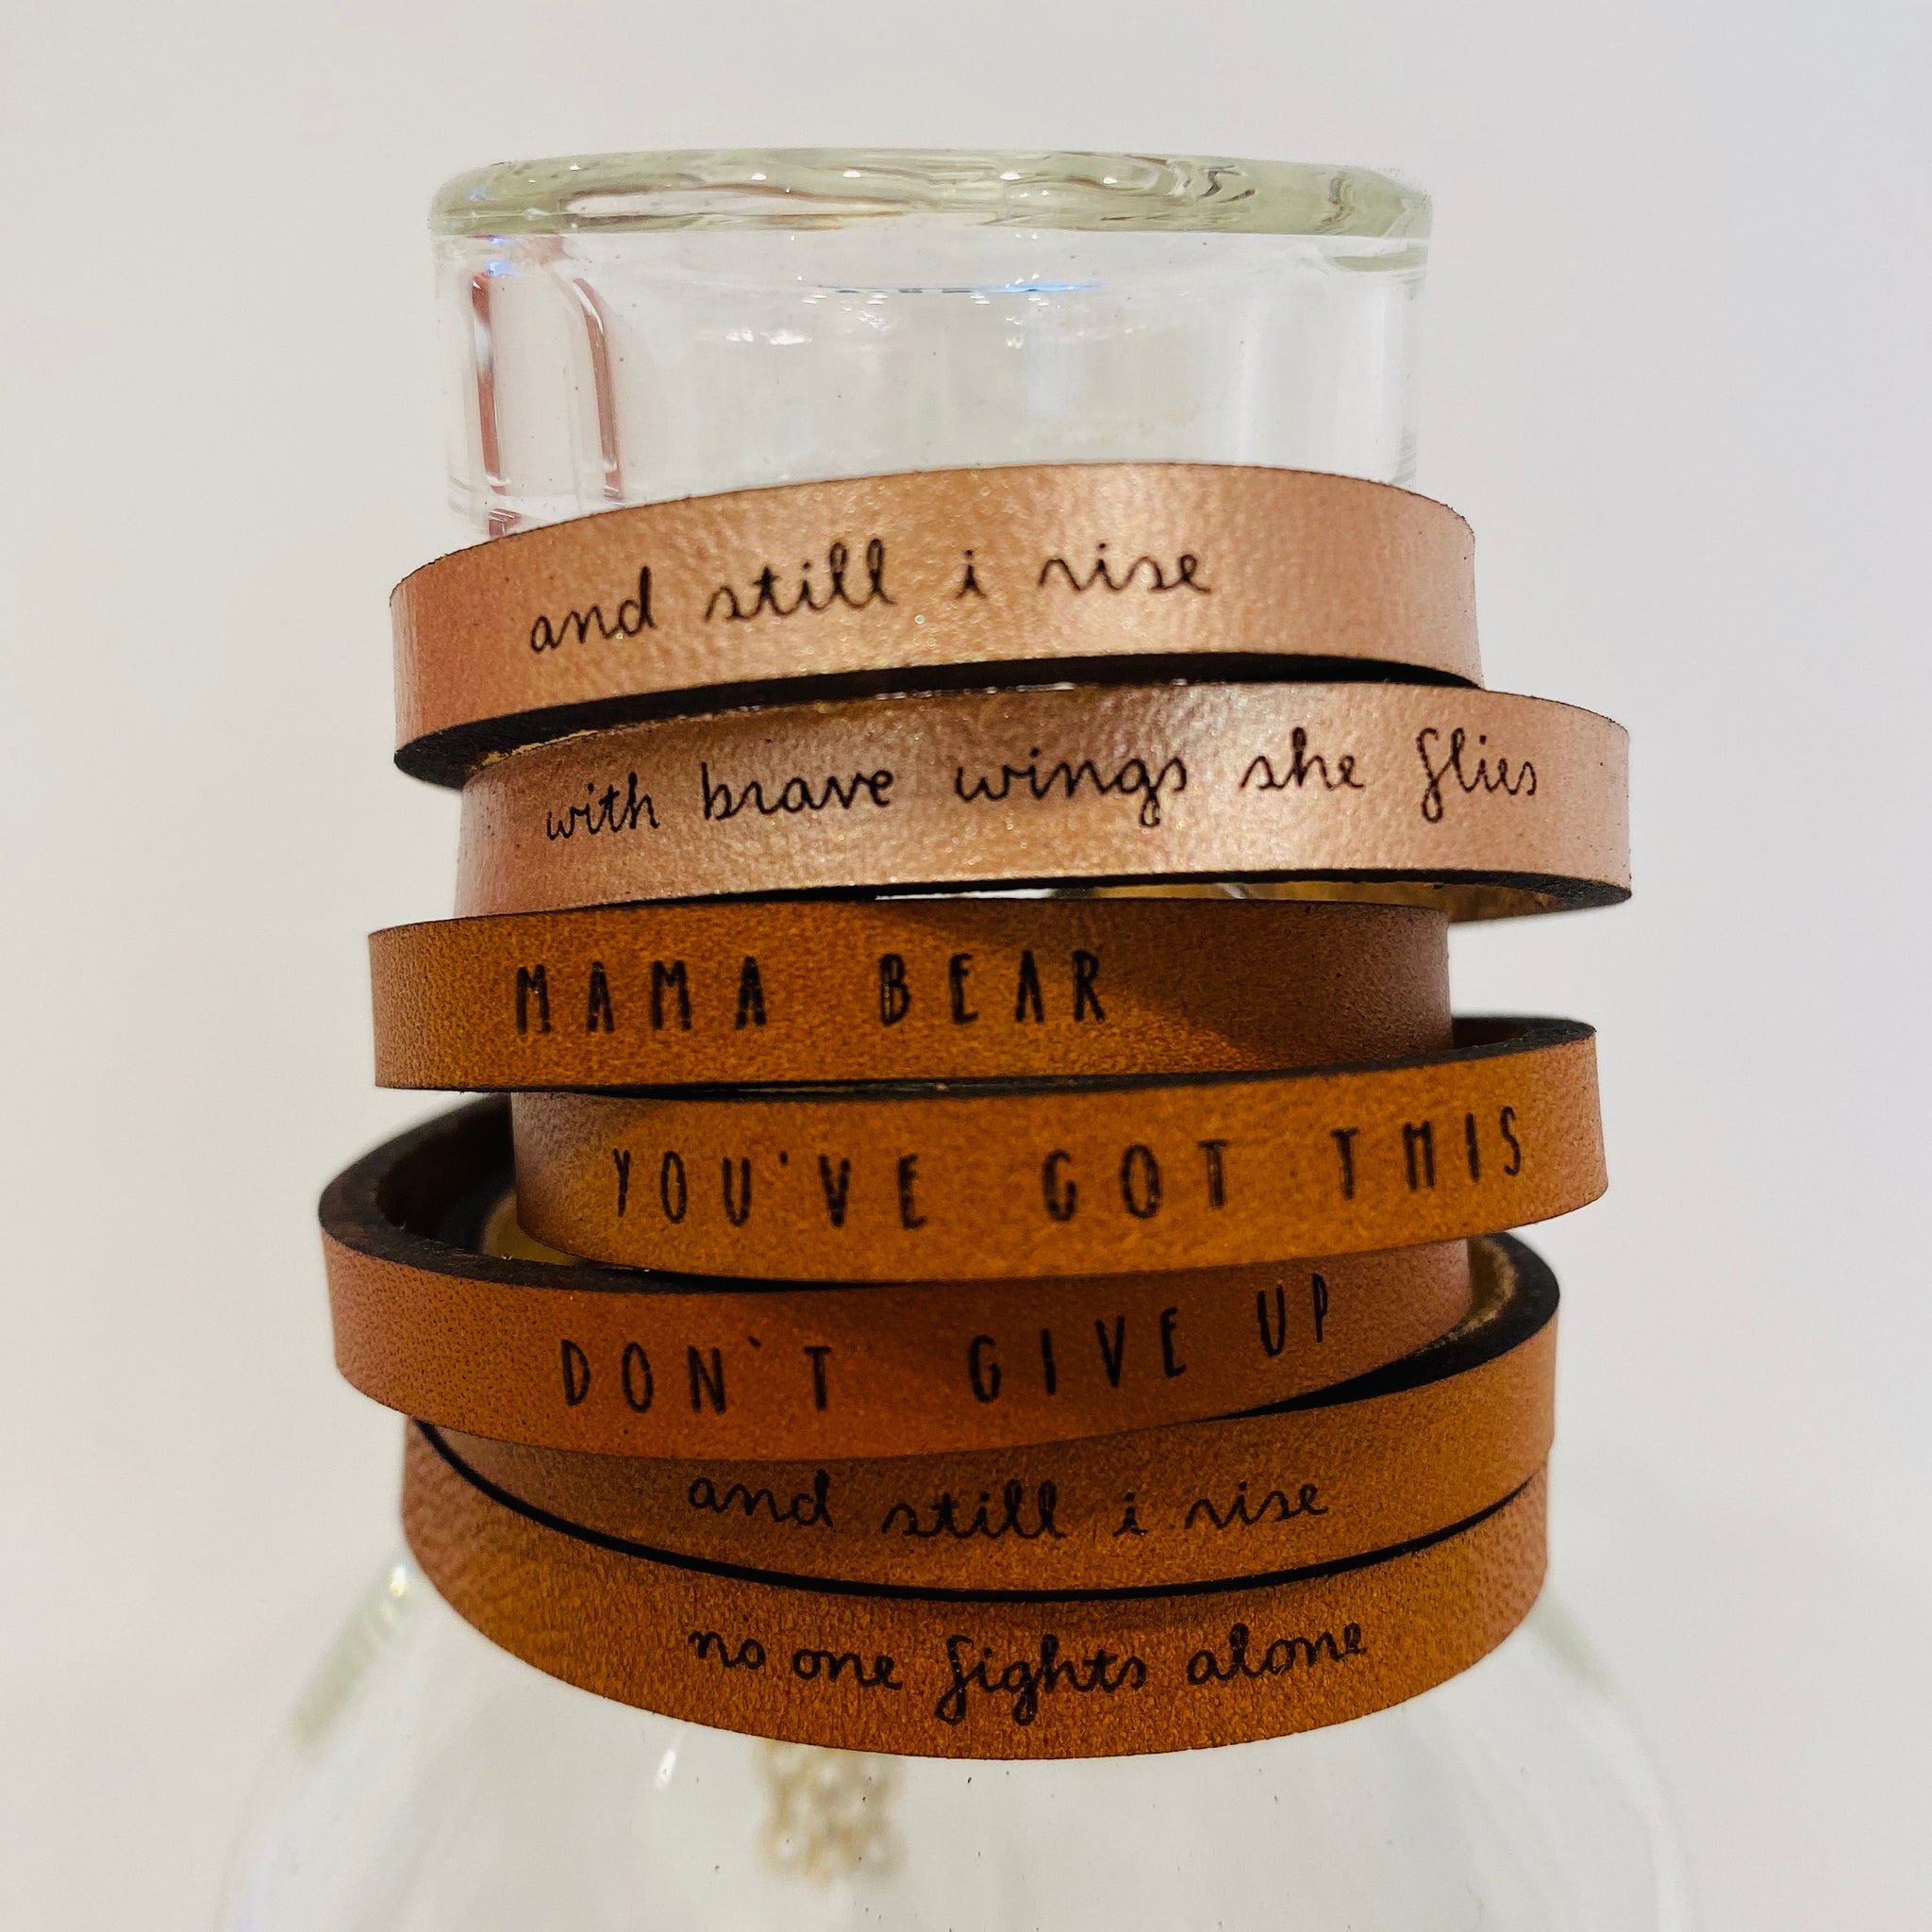 You've Got This Inspirational Leather Bracelet